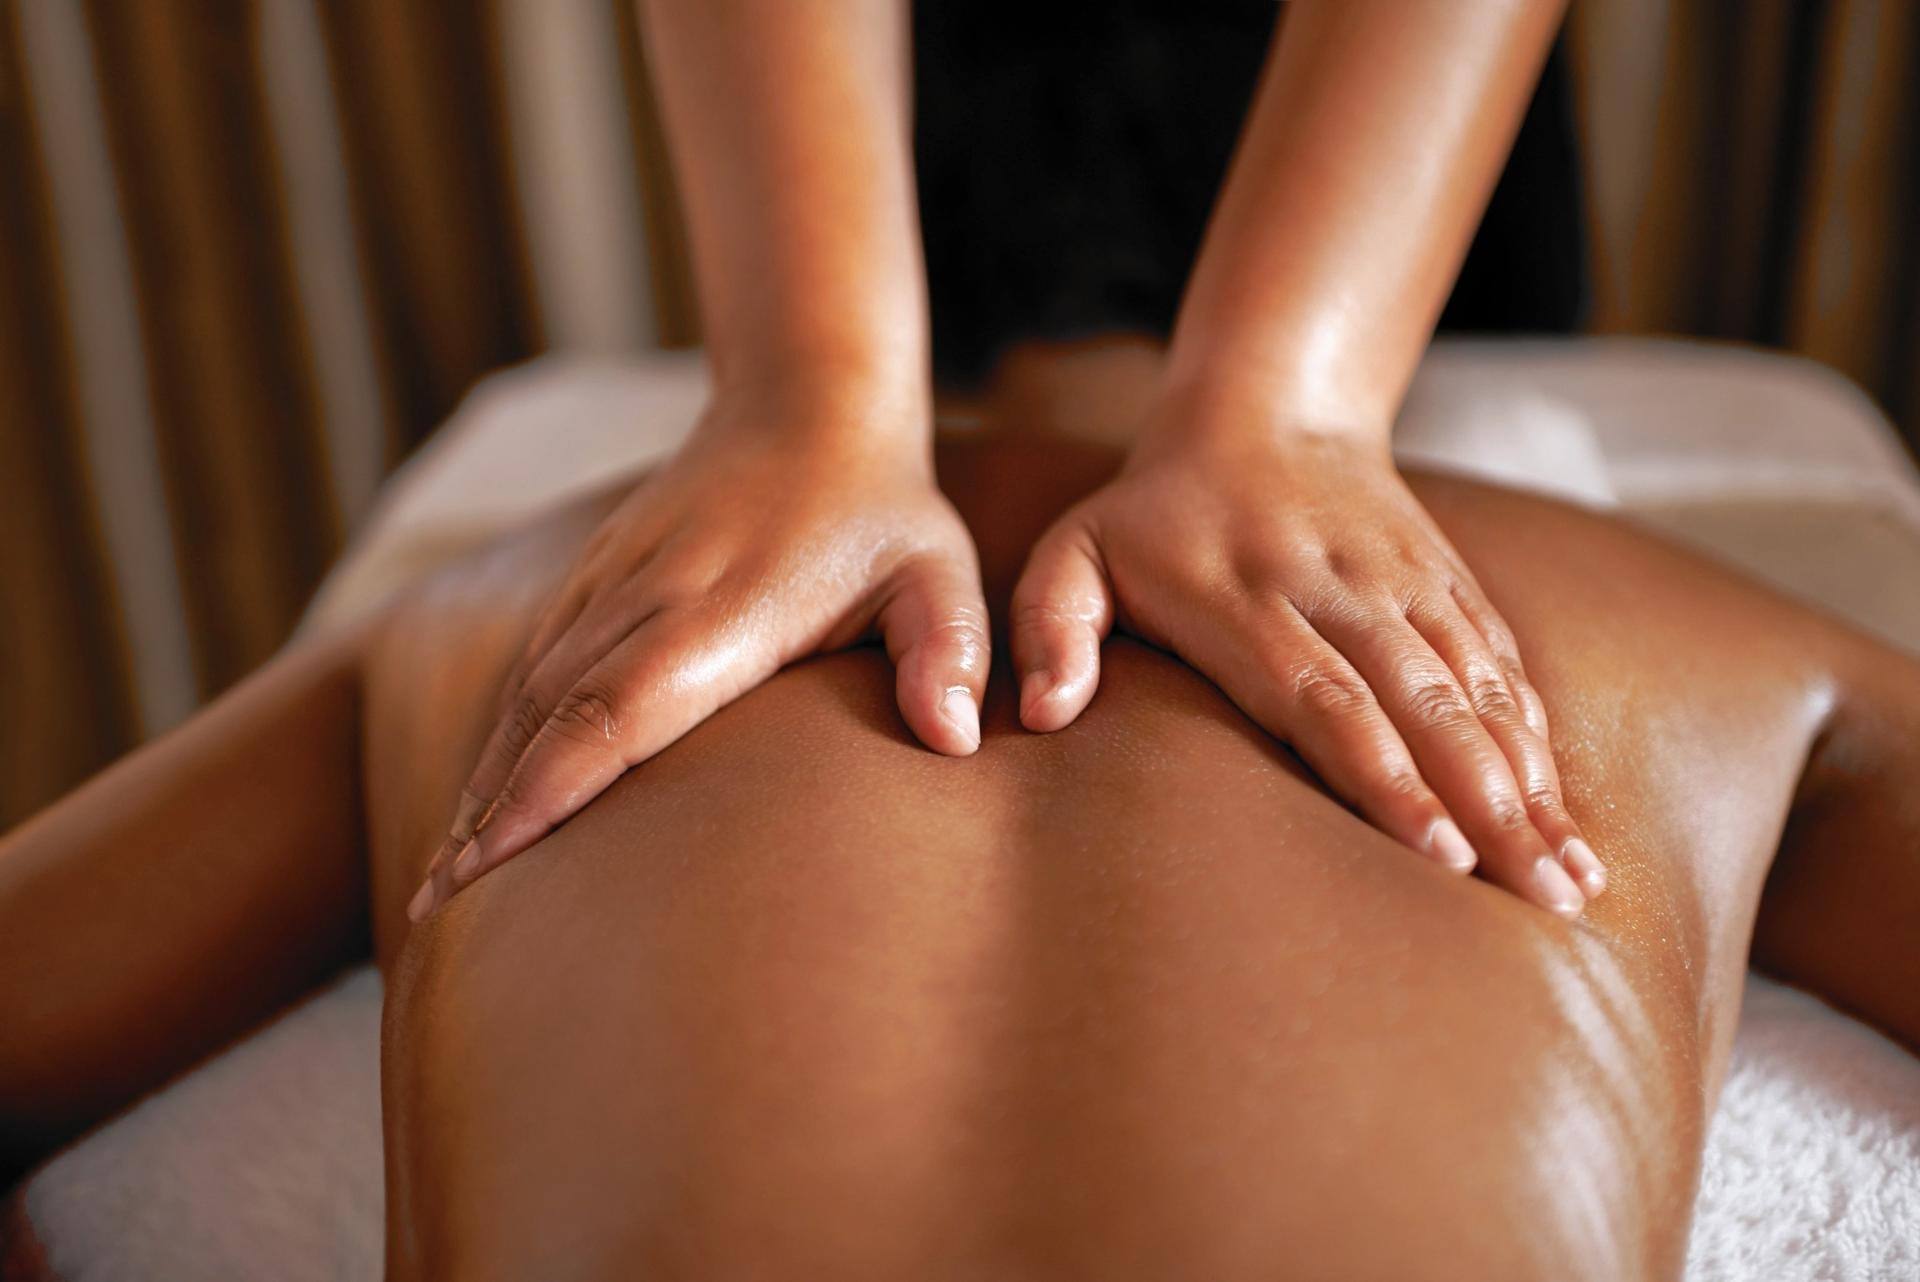 Focus sur les mains de la masseuse qui exerce un massage du dos